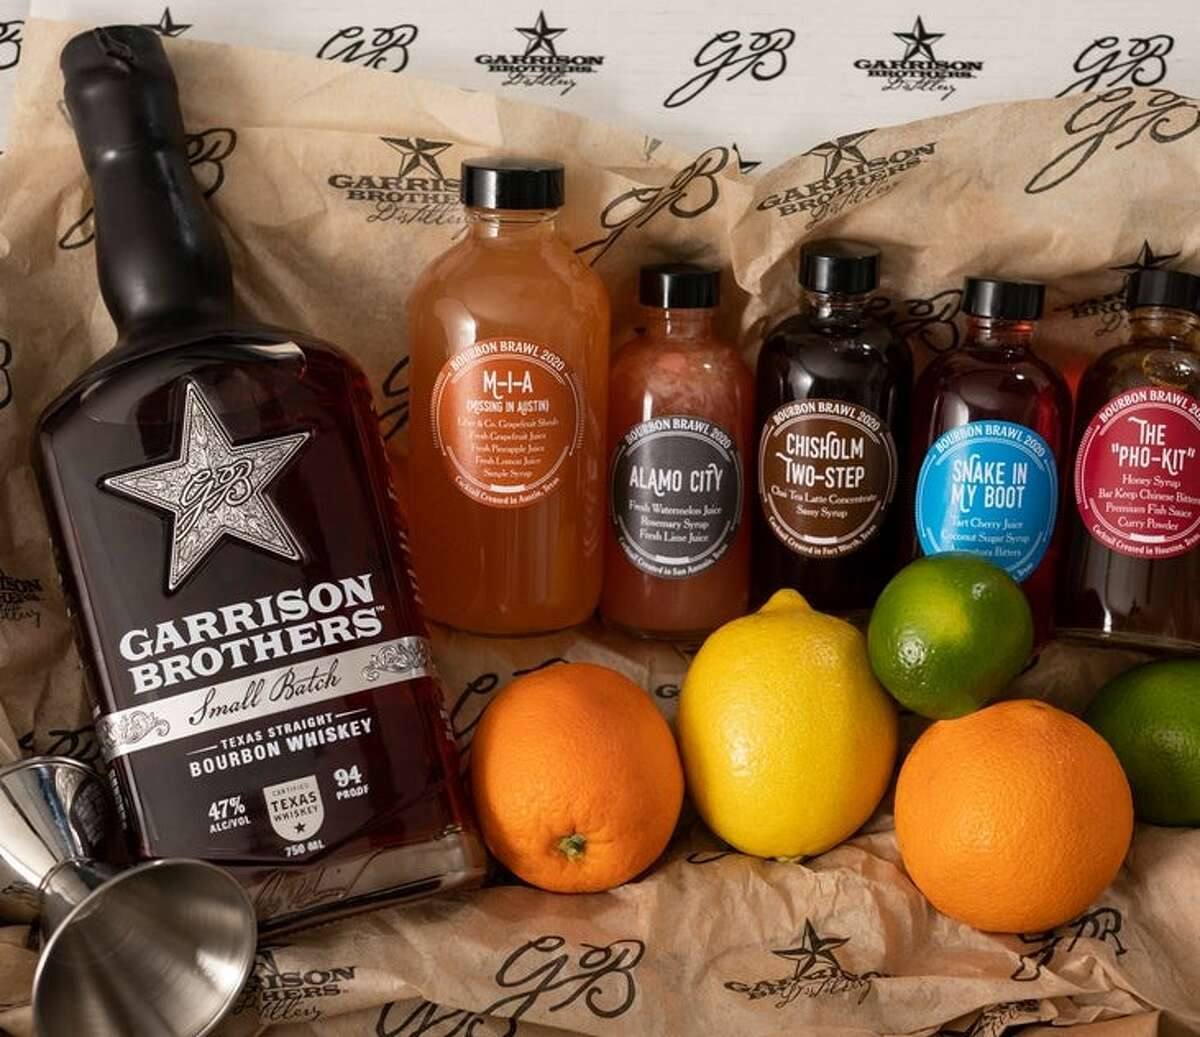 The 2020 Bourbon Brawl at-home cocktail kit will include the mix for the featured drinks.